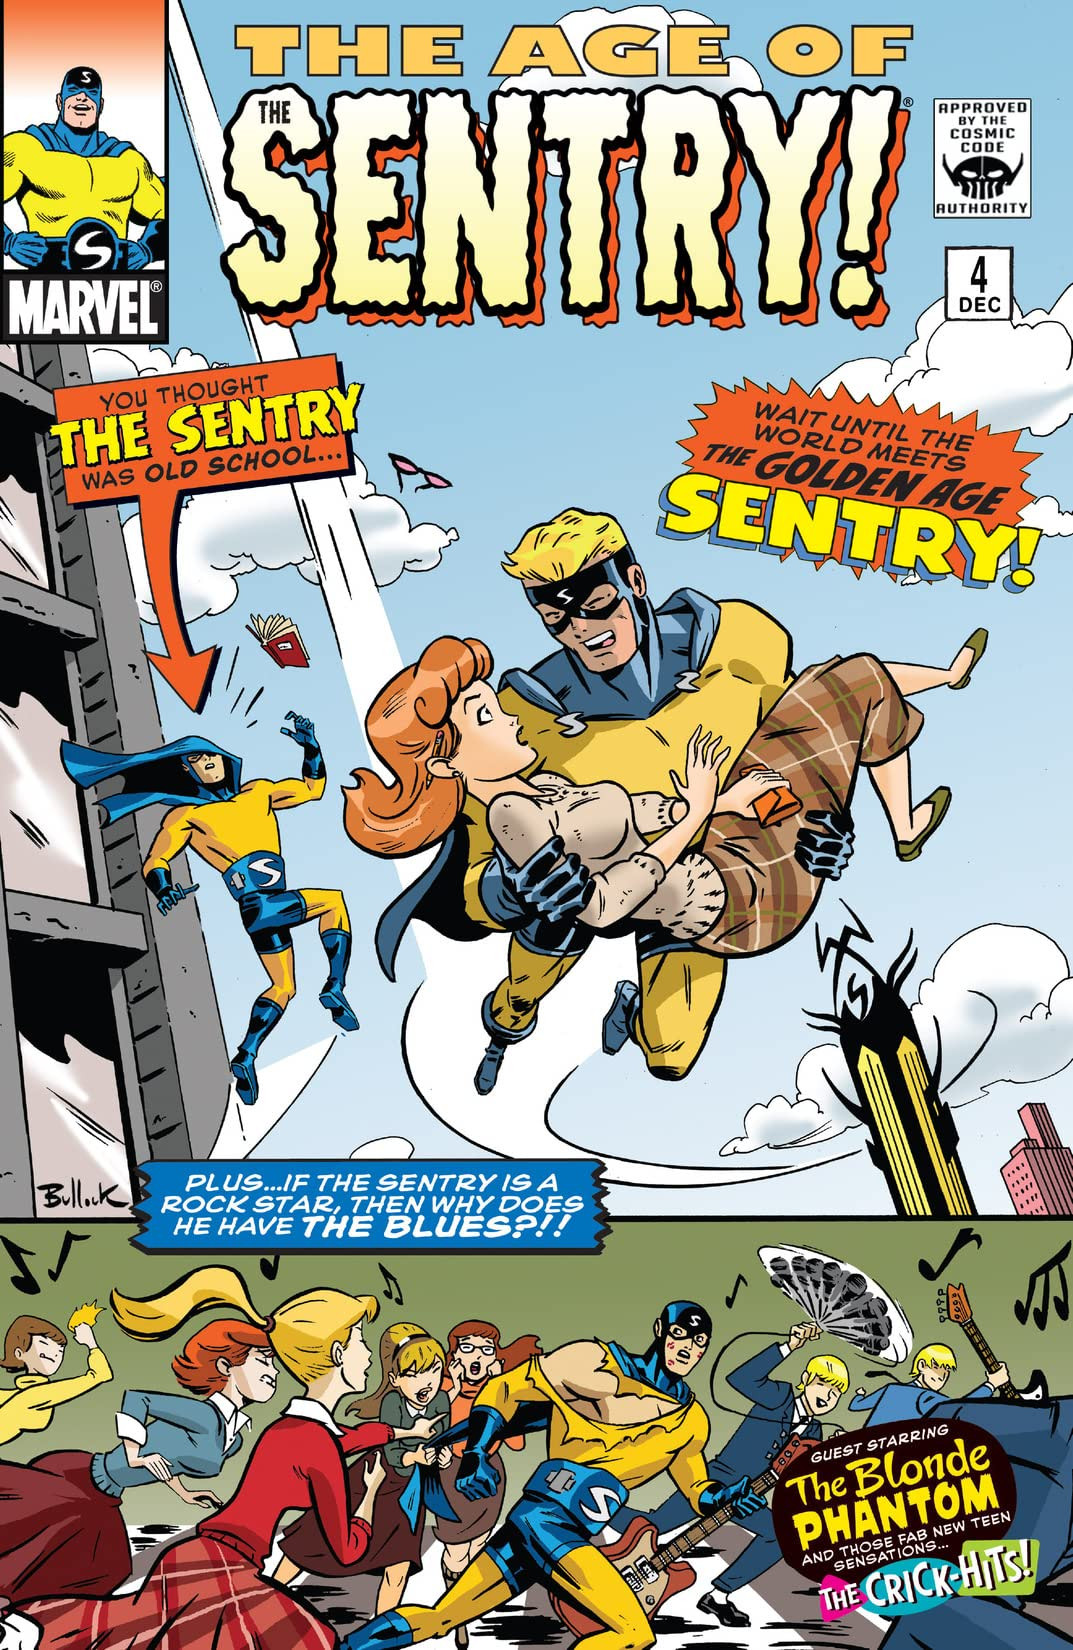 The Age of the Sentry Vol 1 4